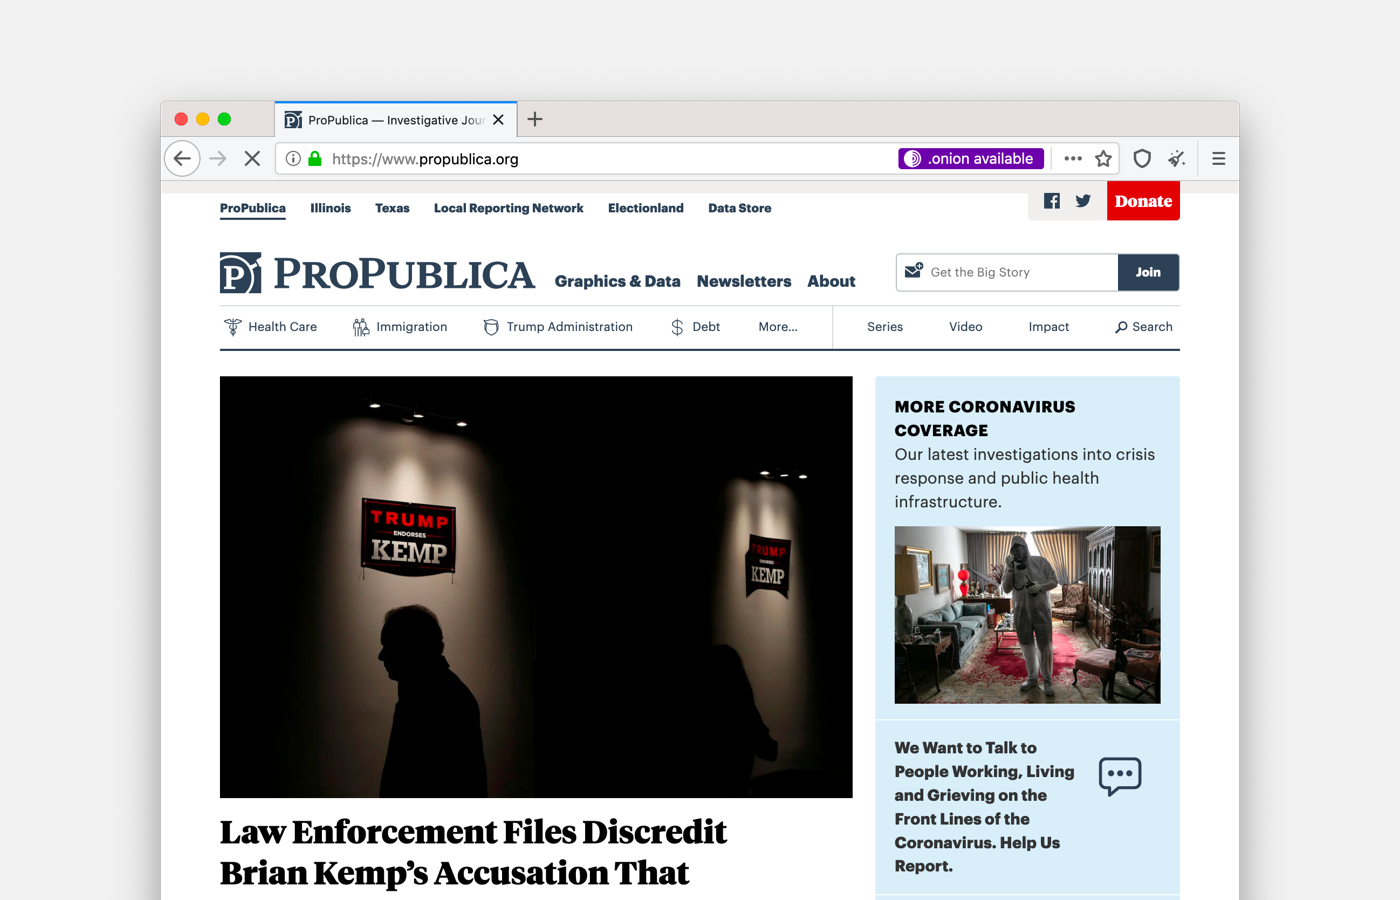 assets/static/images/tb95/onion-location-propublica@2x.png